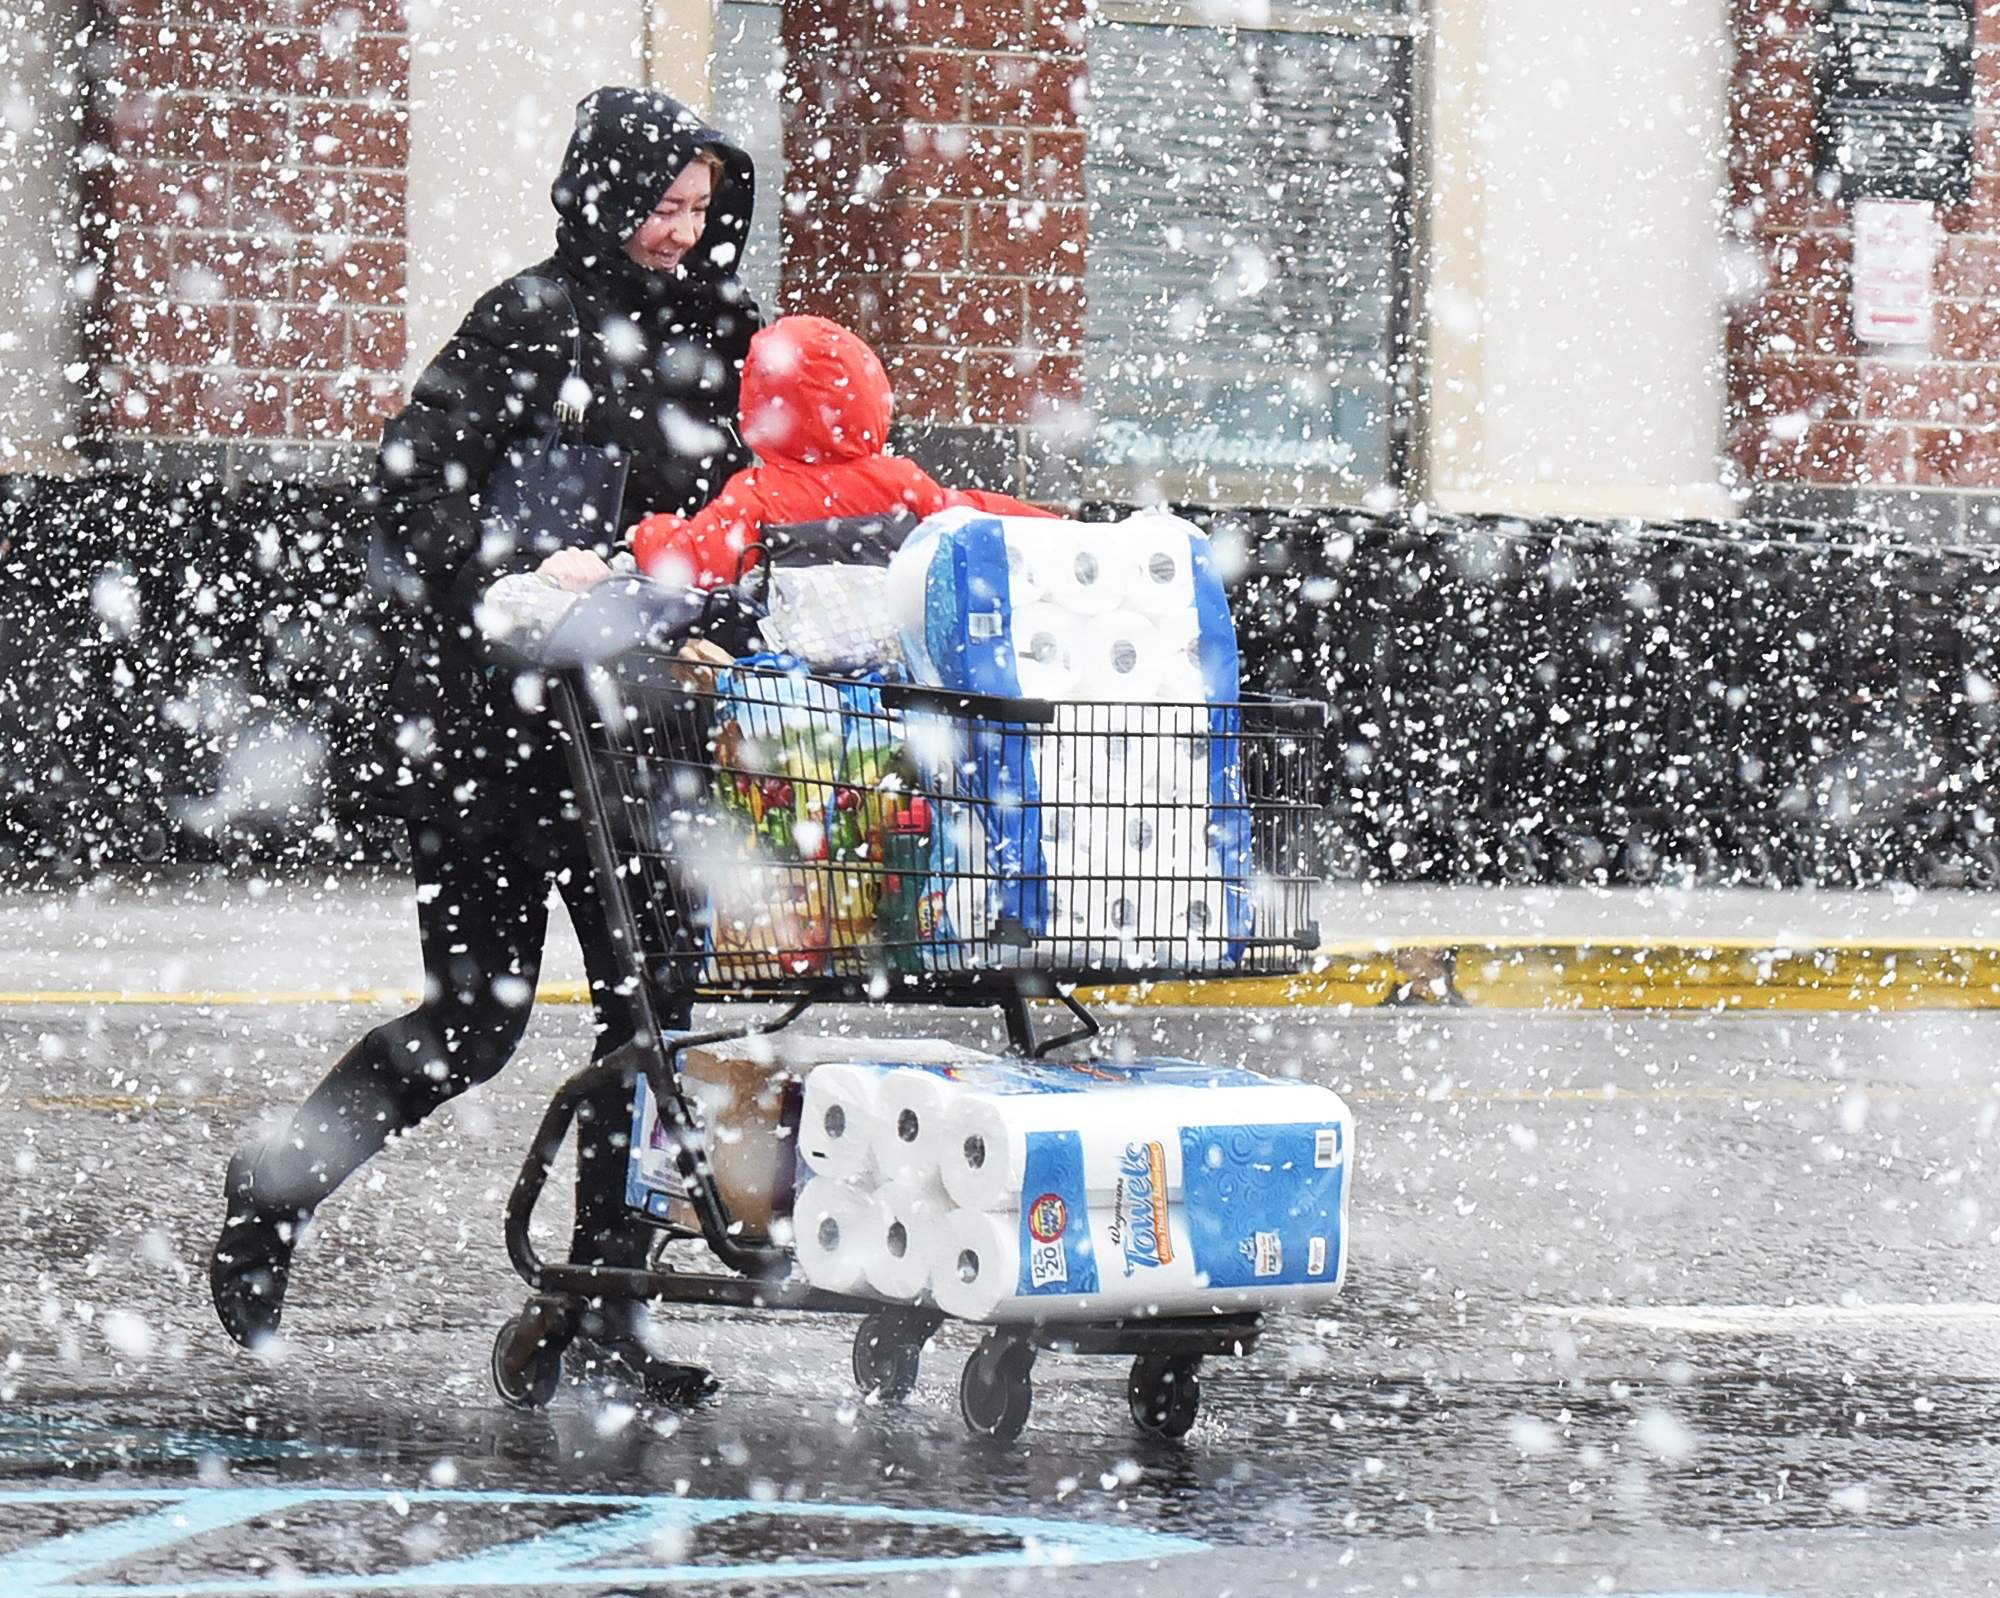 A customer hurries to her car after grocery shopping at Wegmans in Mount Laurel, on Wednesday, March 7, 2018, as the wintry mix was changing into snow. [NANCY ROKOS / STAFF PHOTOJOURNALIST]